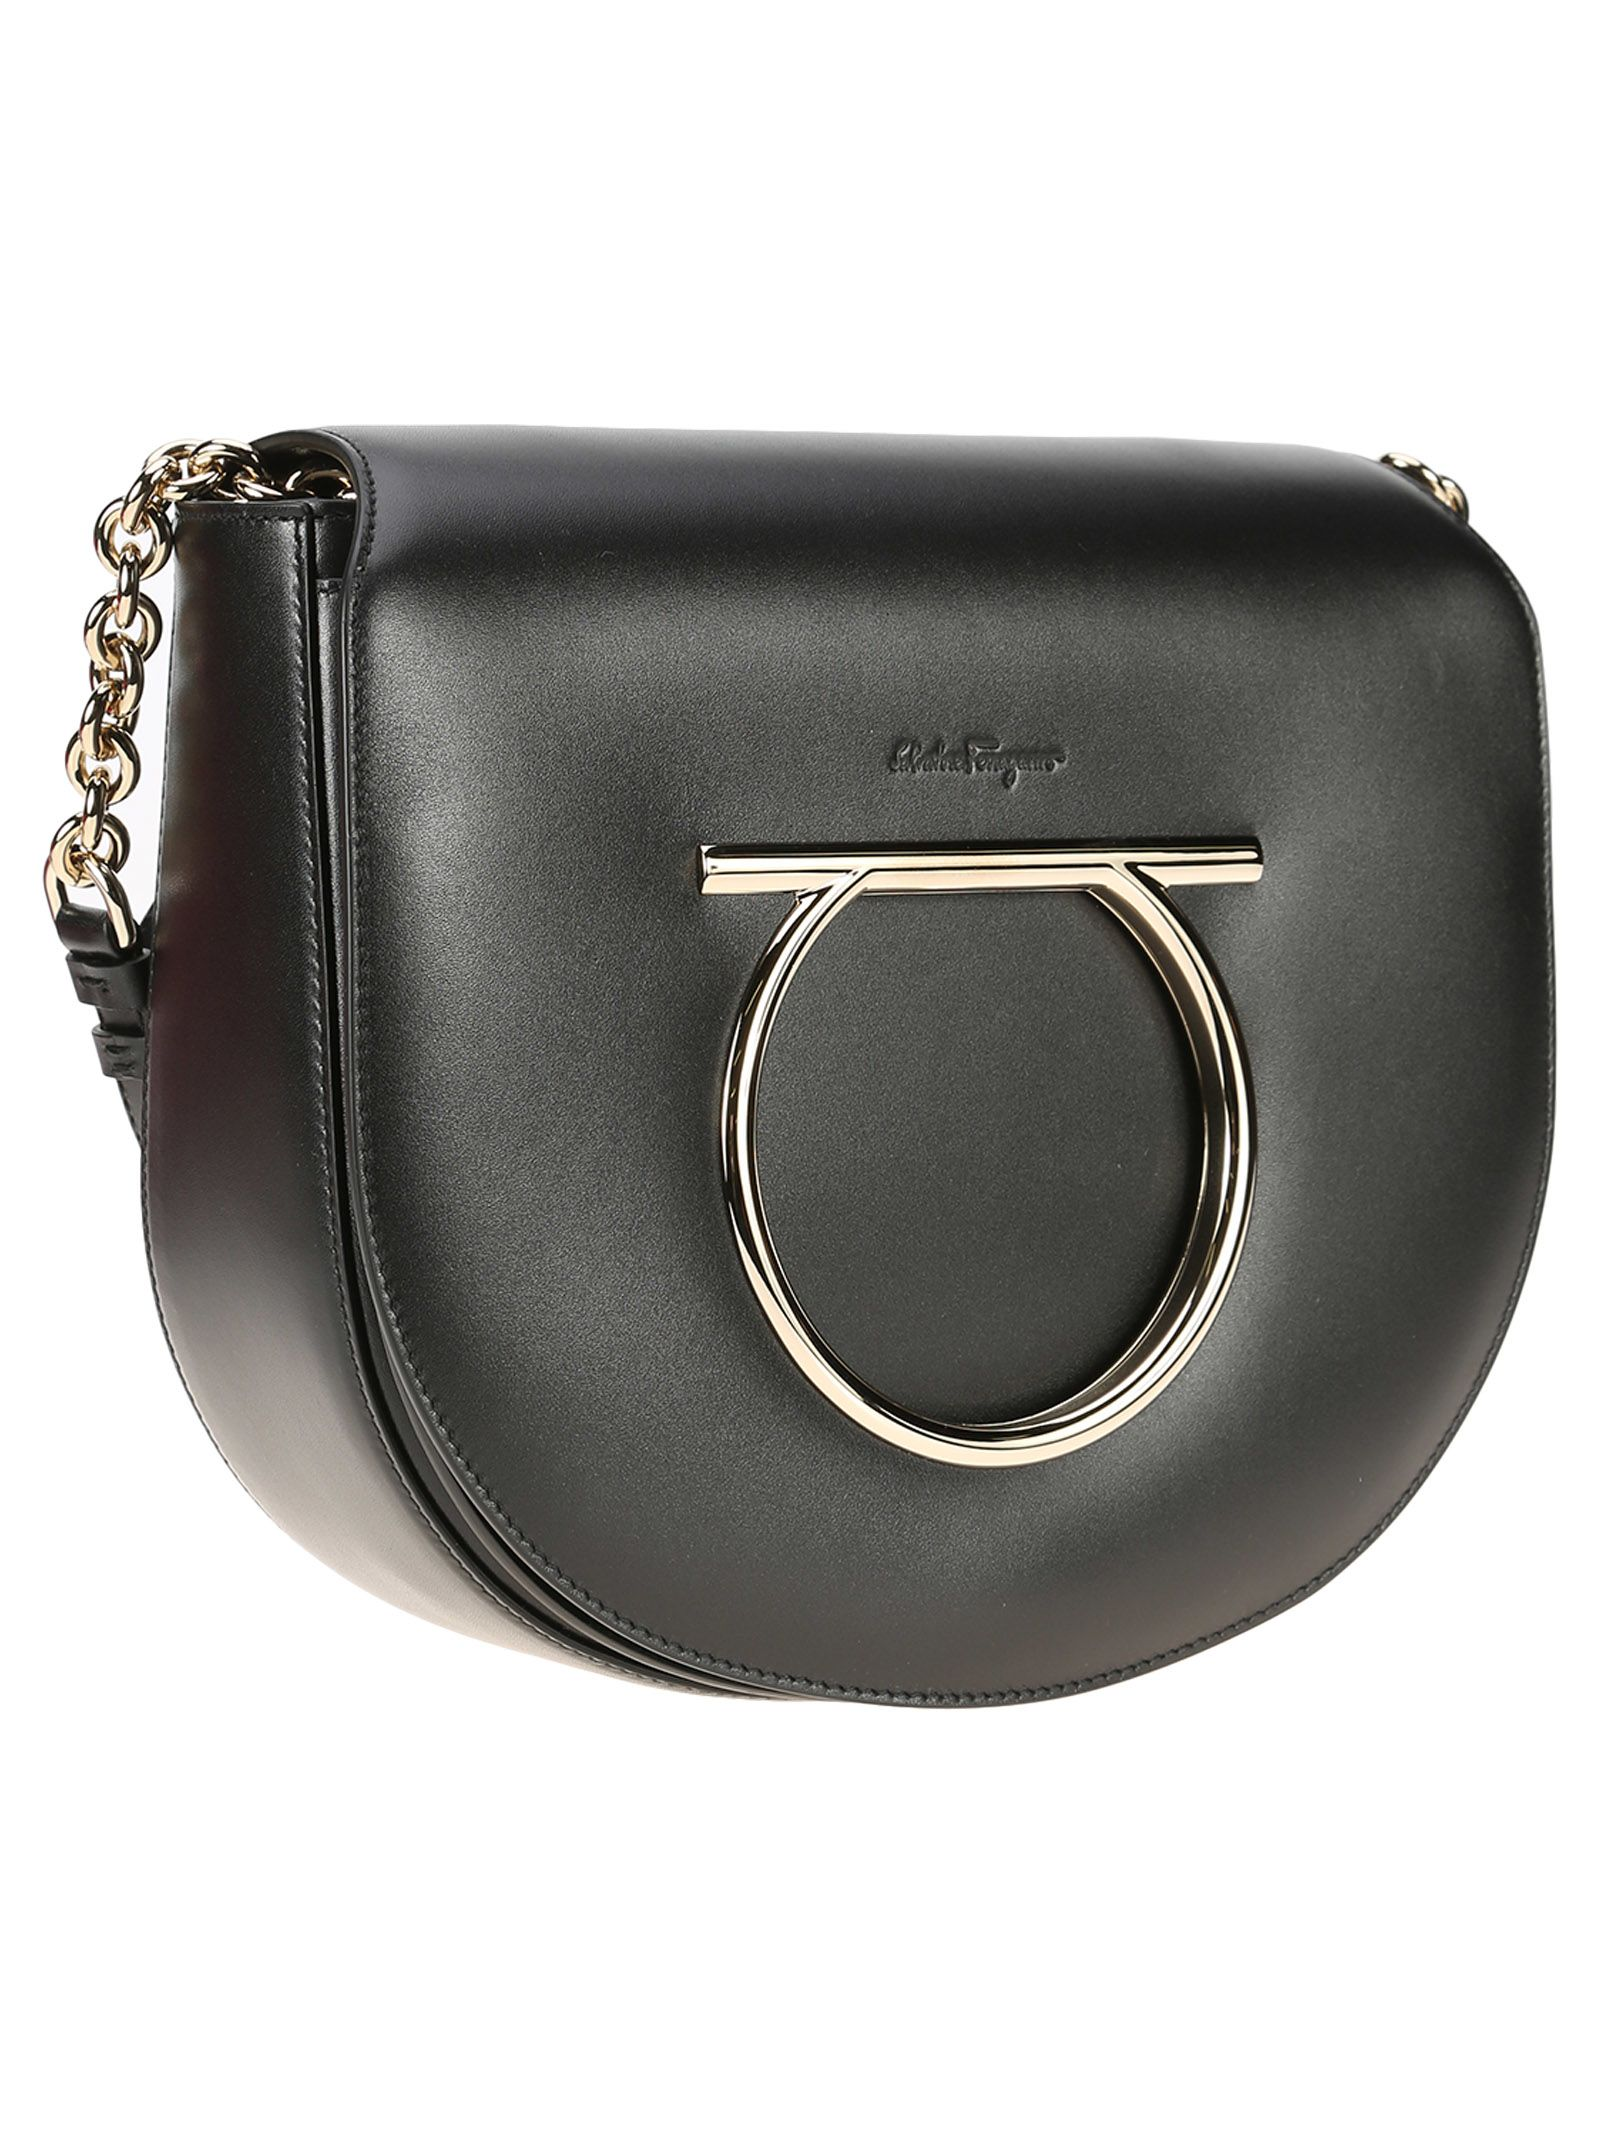 Vela Medium leather shoulder bag Salvatore Ferragamo 5xVMMH3x